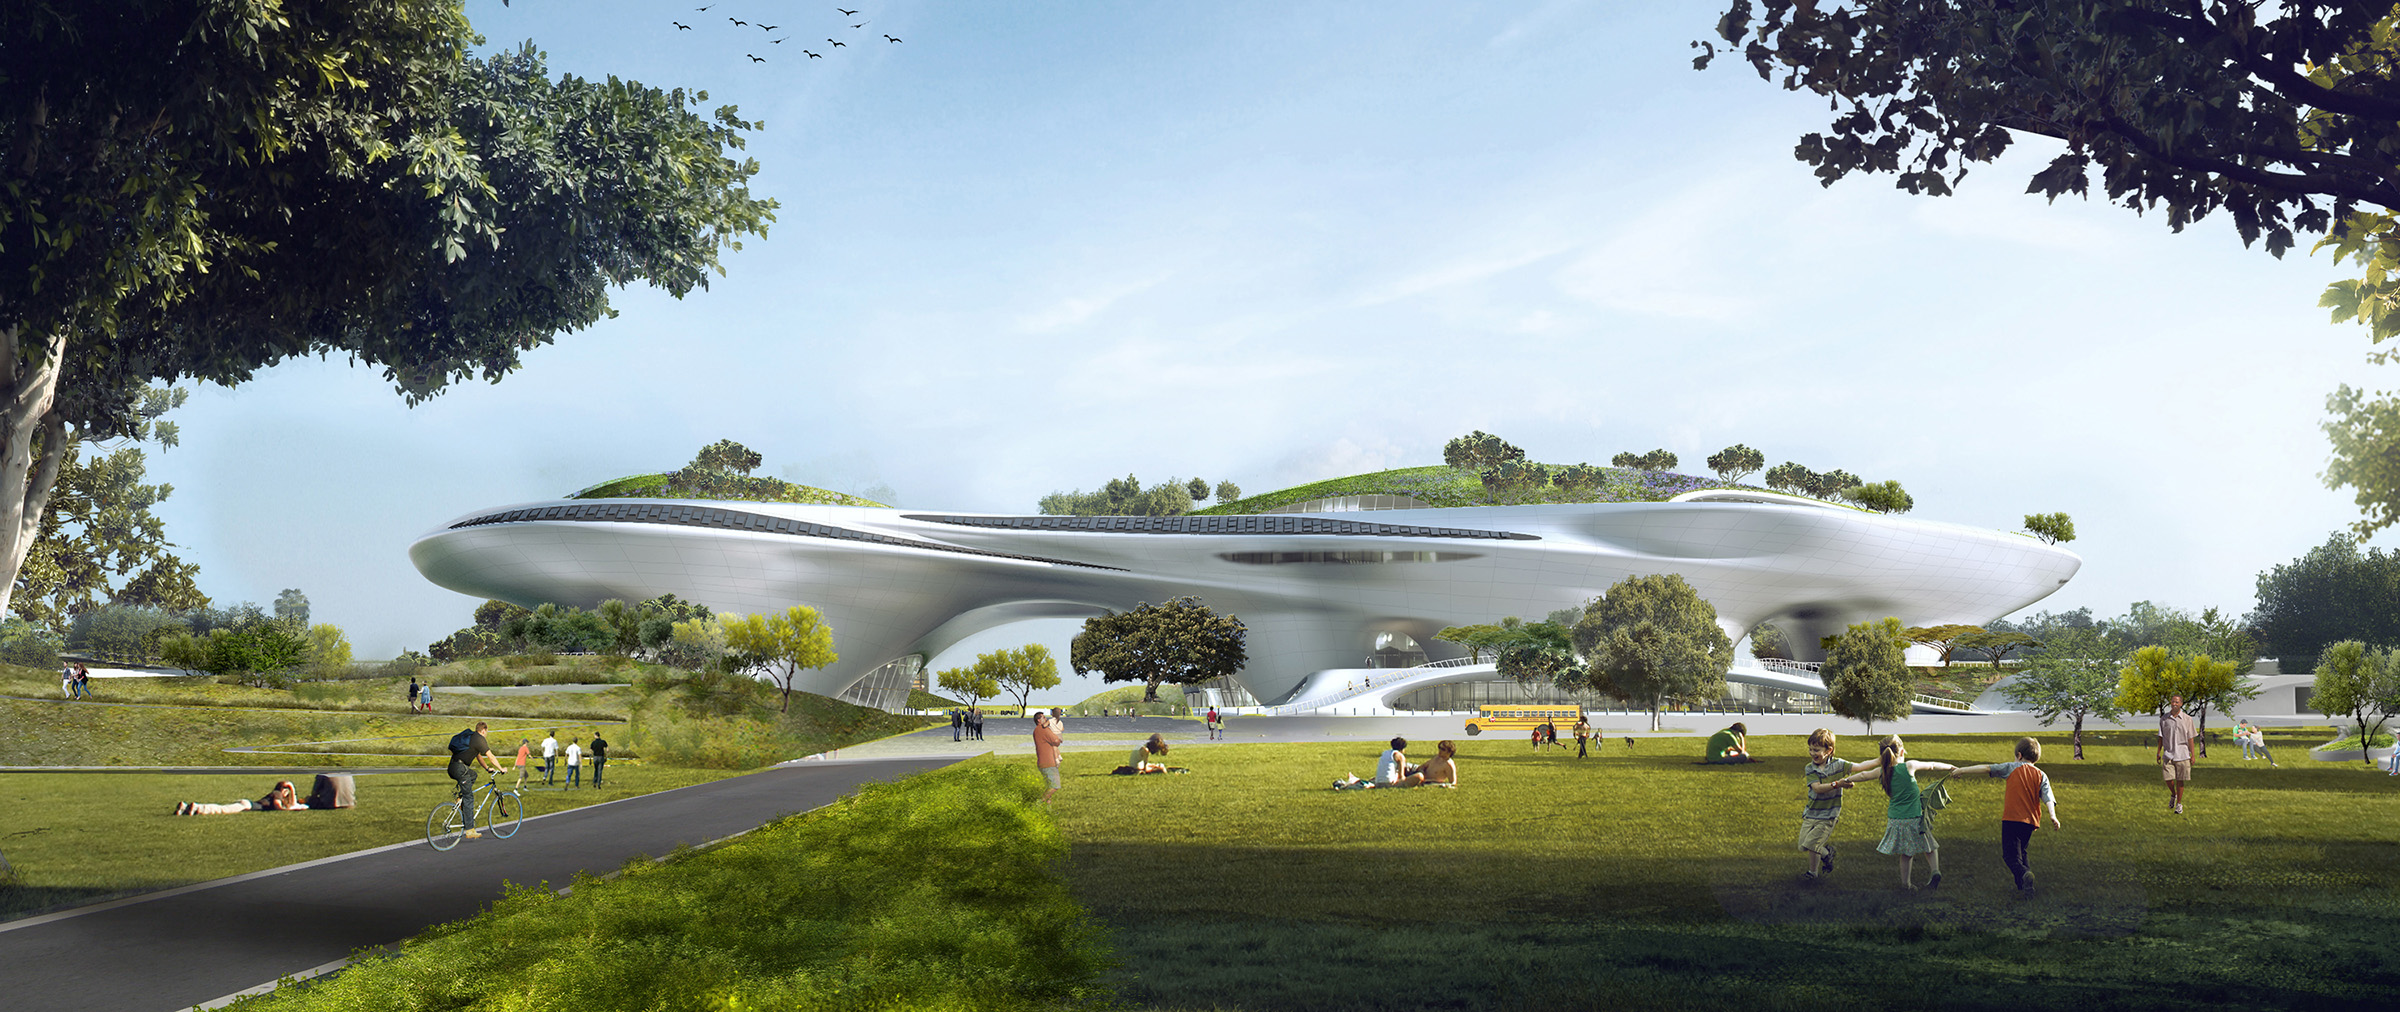 Lucas Museum of Narrative Art designed by MAD Architects